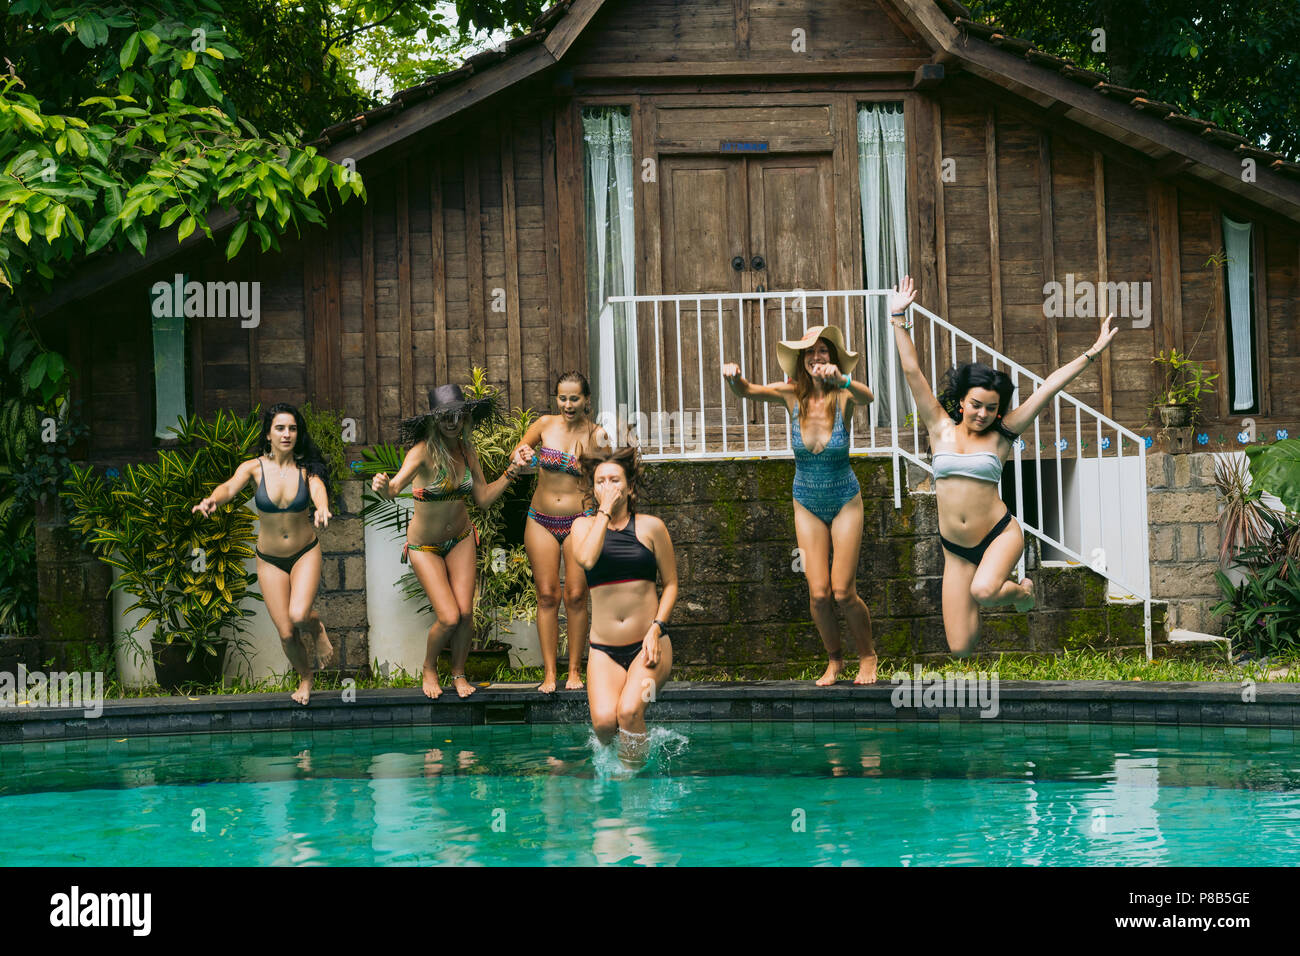 attractive young women in swimwear jumping in swimming pool at tropical resort - Stock Image